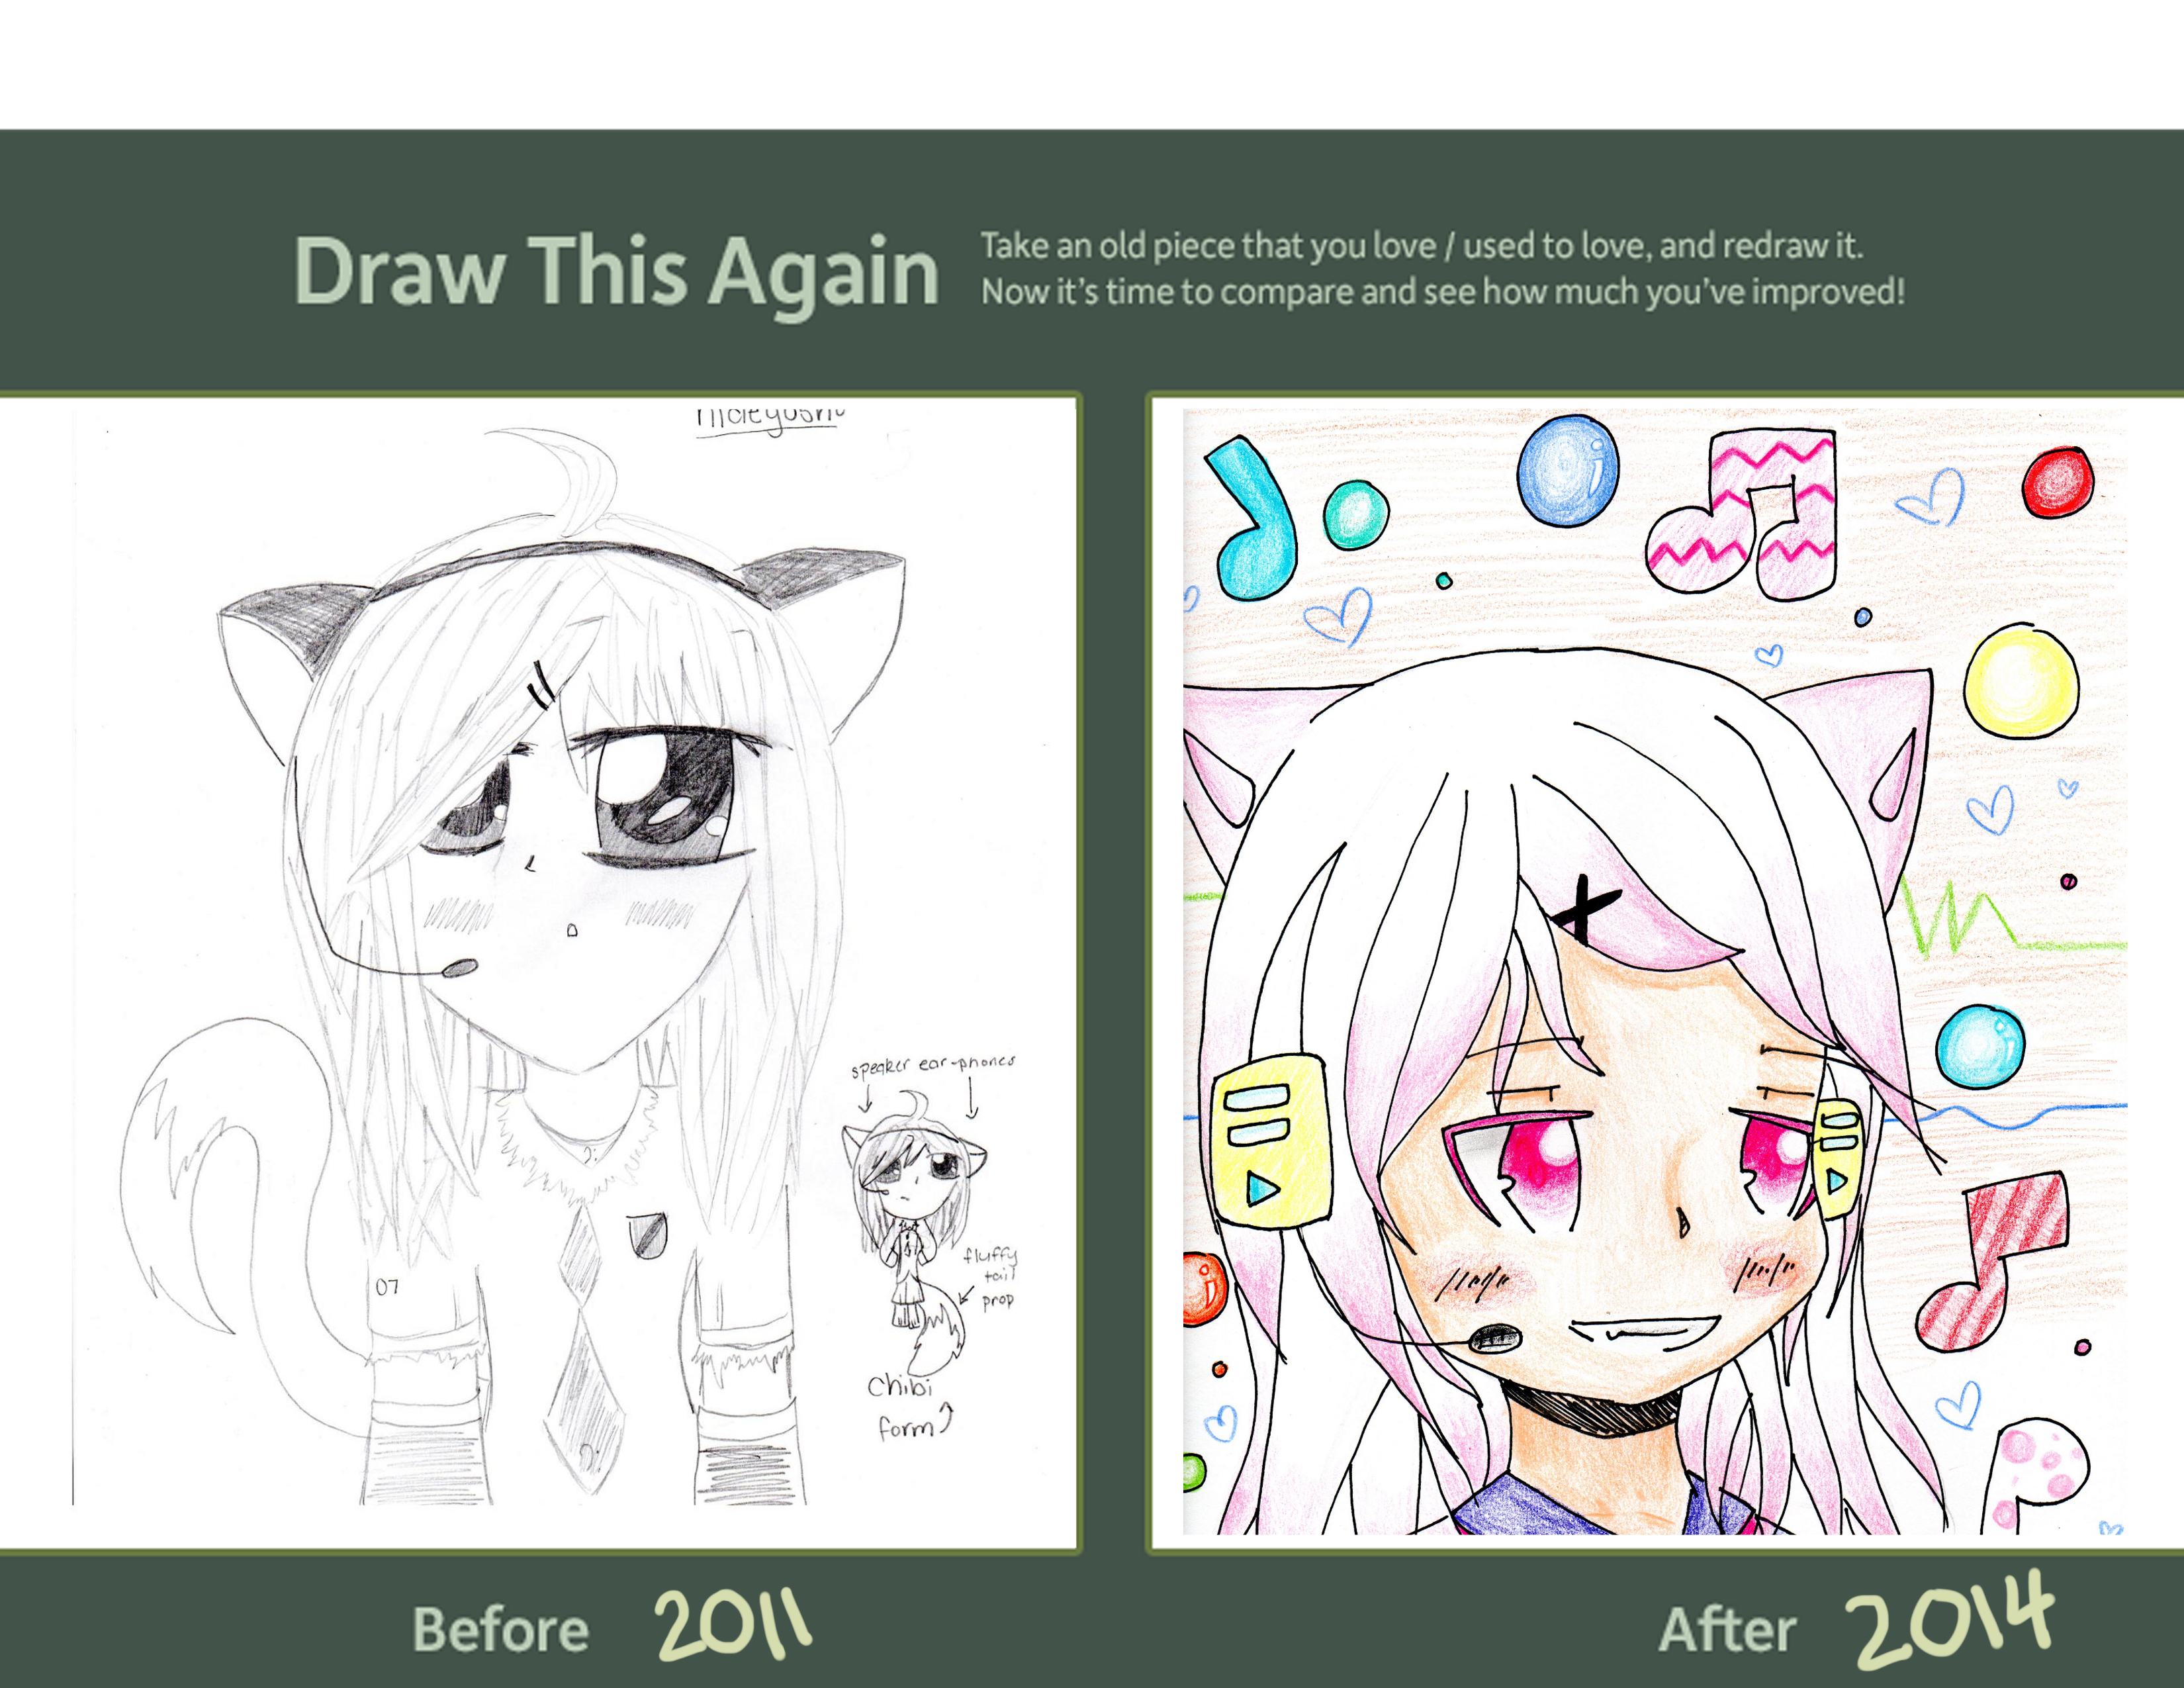 draw this again meme template - draw it again meme by windsnap cat on deviantart